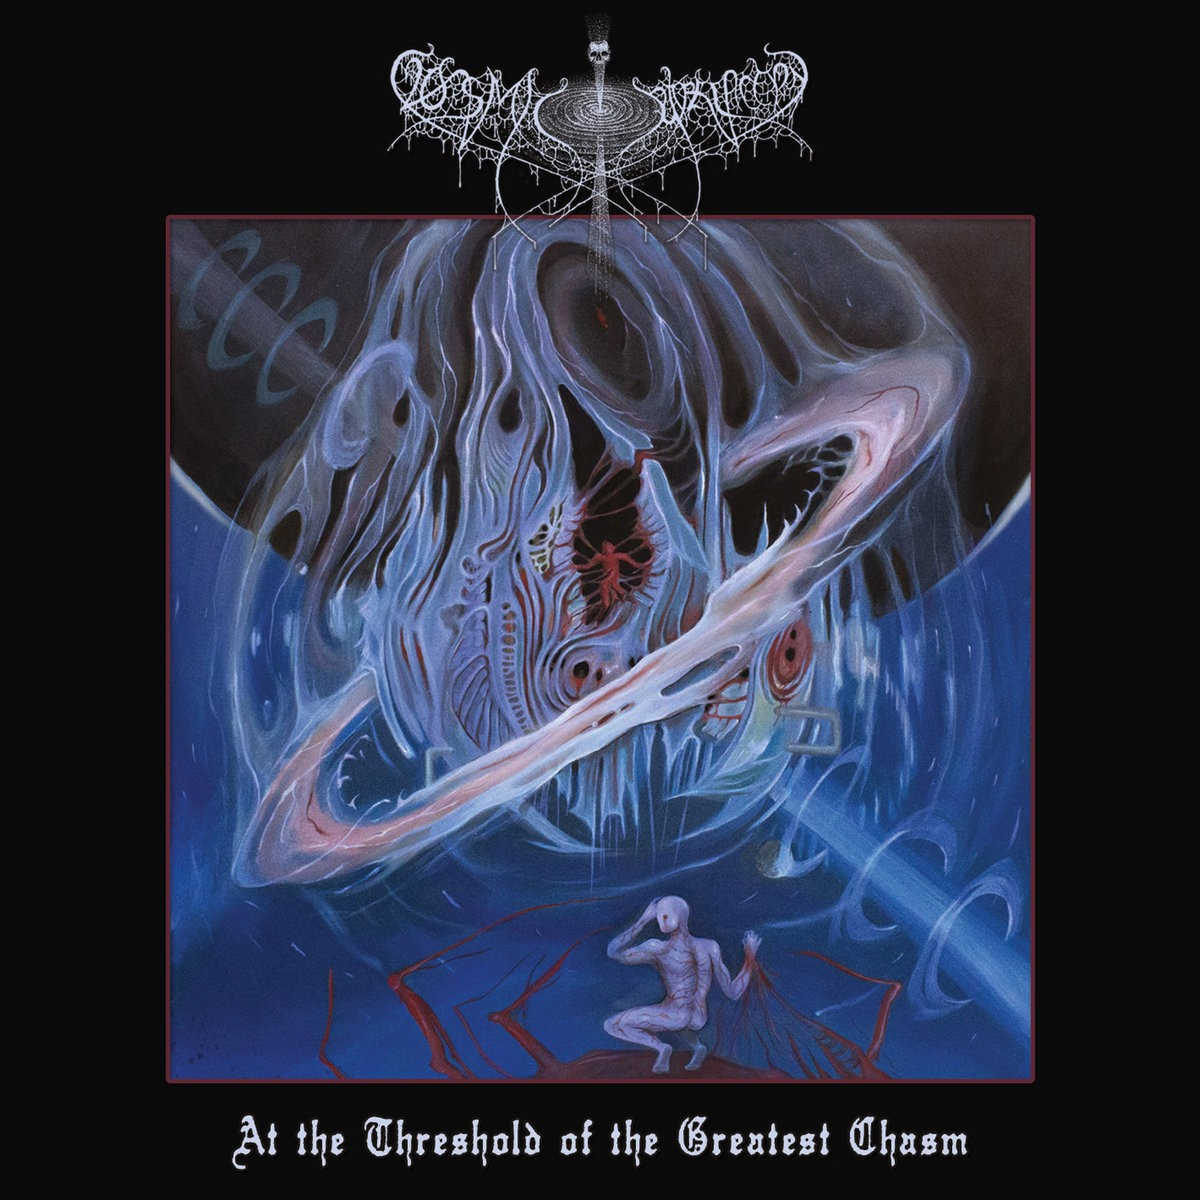 Cosmic Putrefaction - At the Threshold of the Greatest Chasm